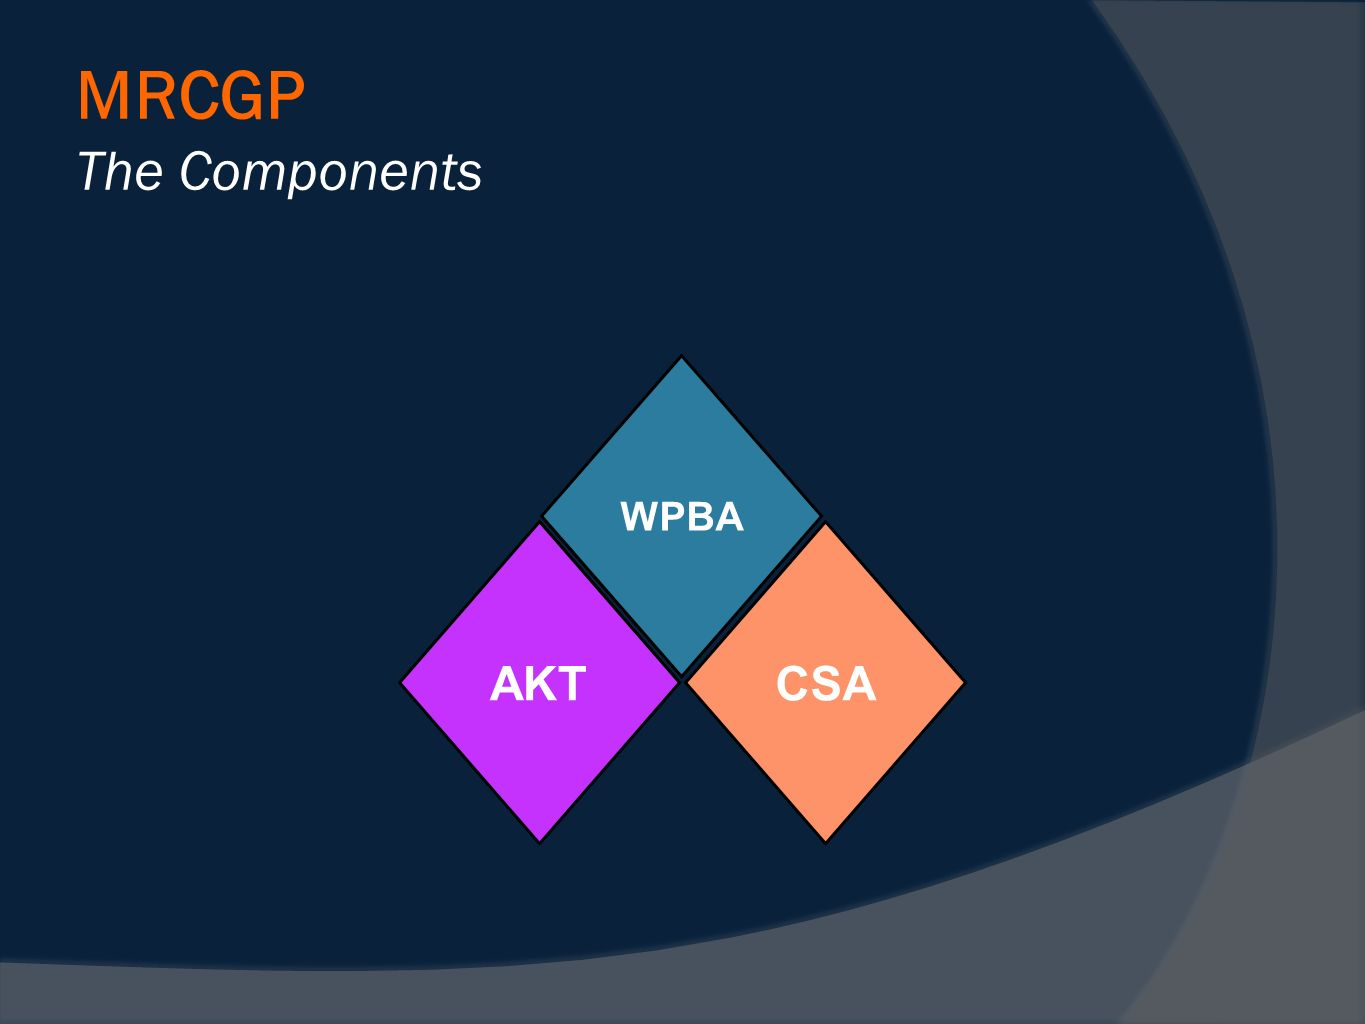 MRCGP The Components WPBA CSAAKT